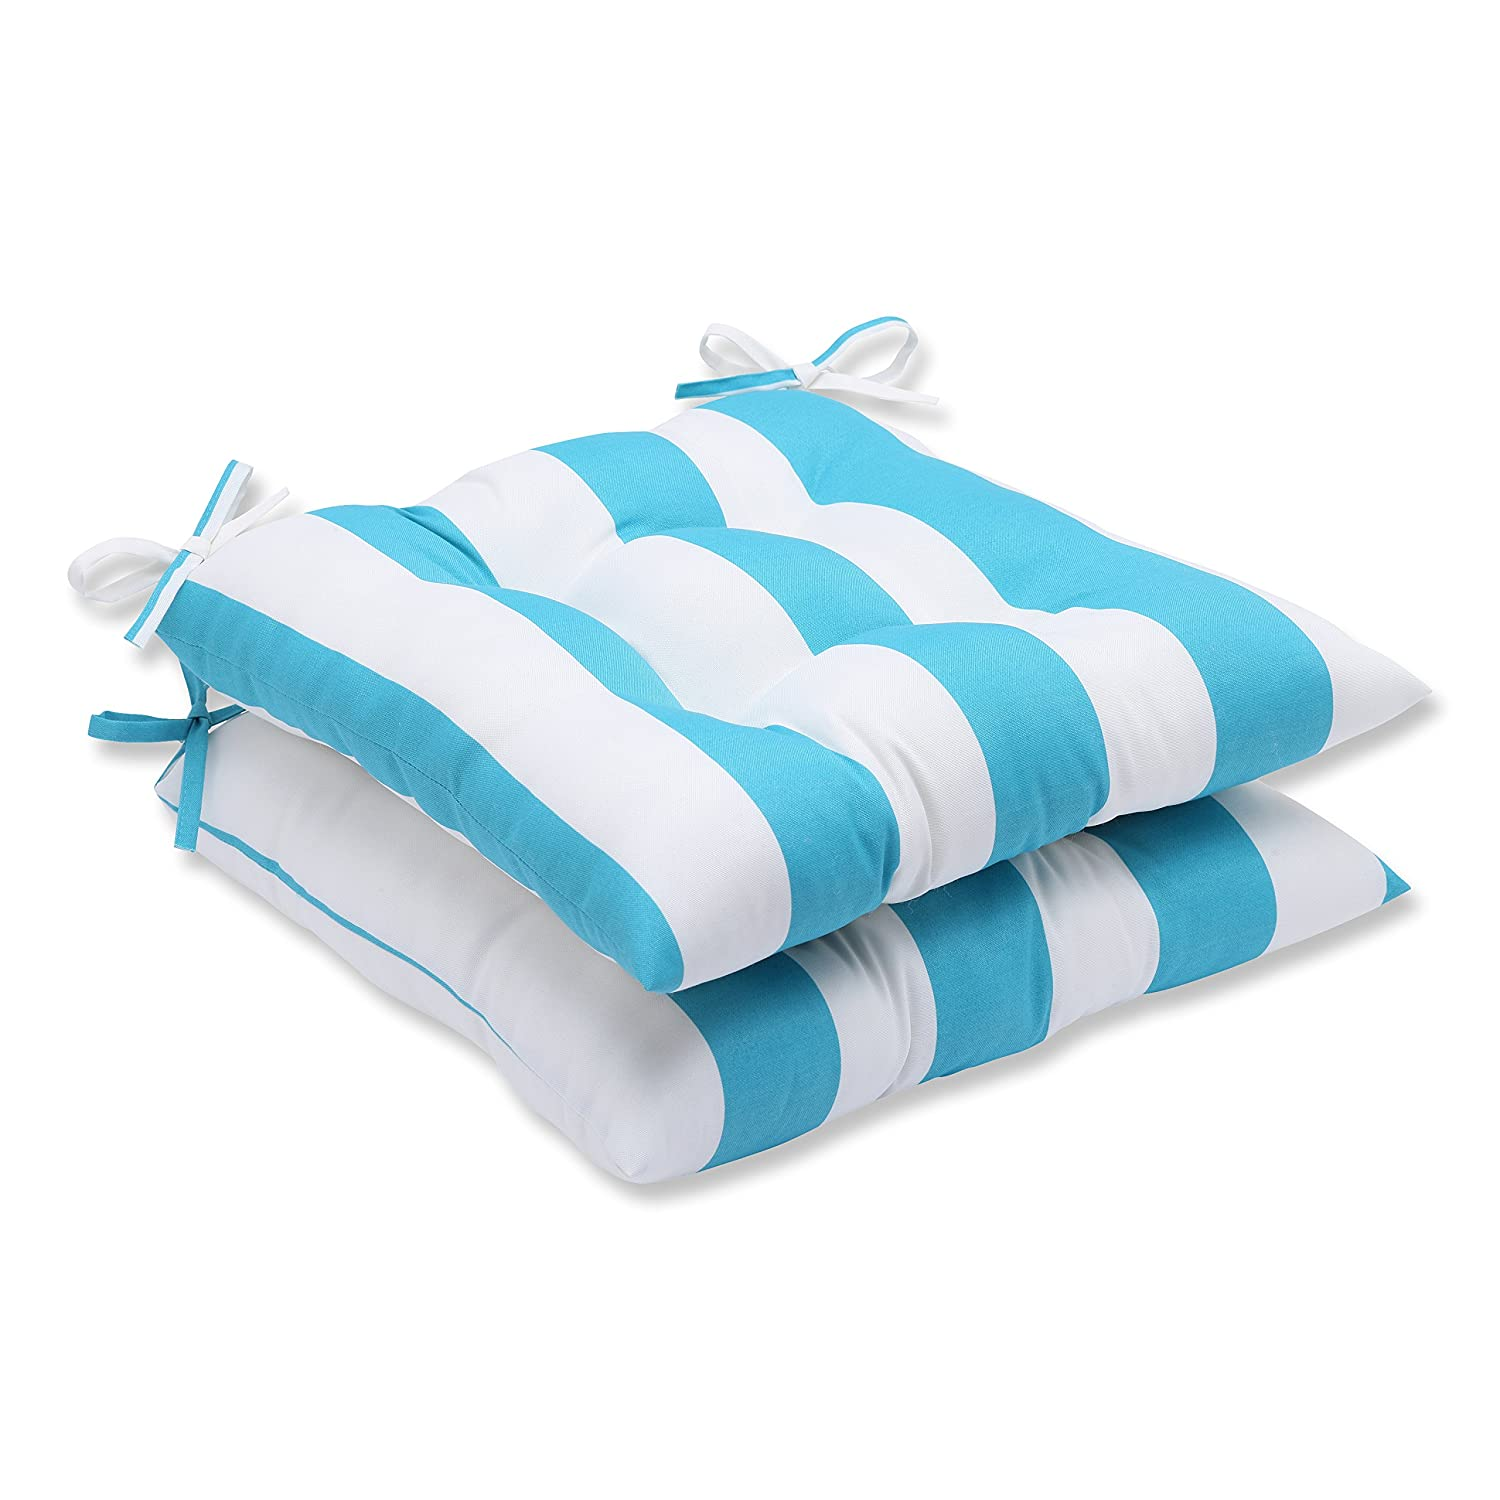 Pillow Perfect Outdoor Cabana Stripe Wrought Iron Seat Cushion, Turquoise, Set of 2